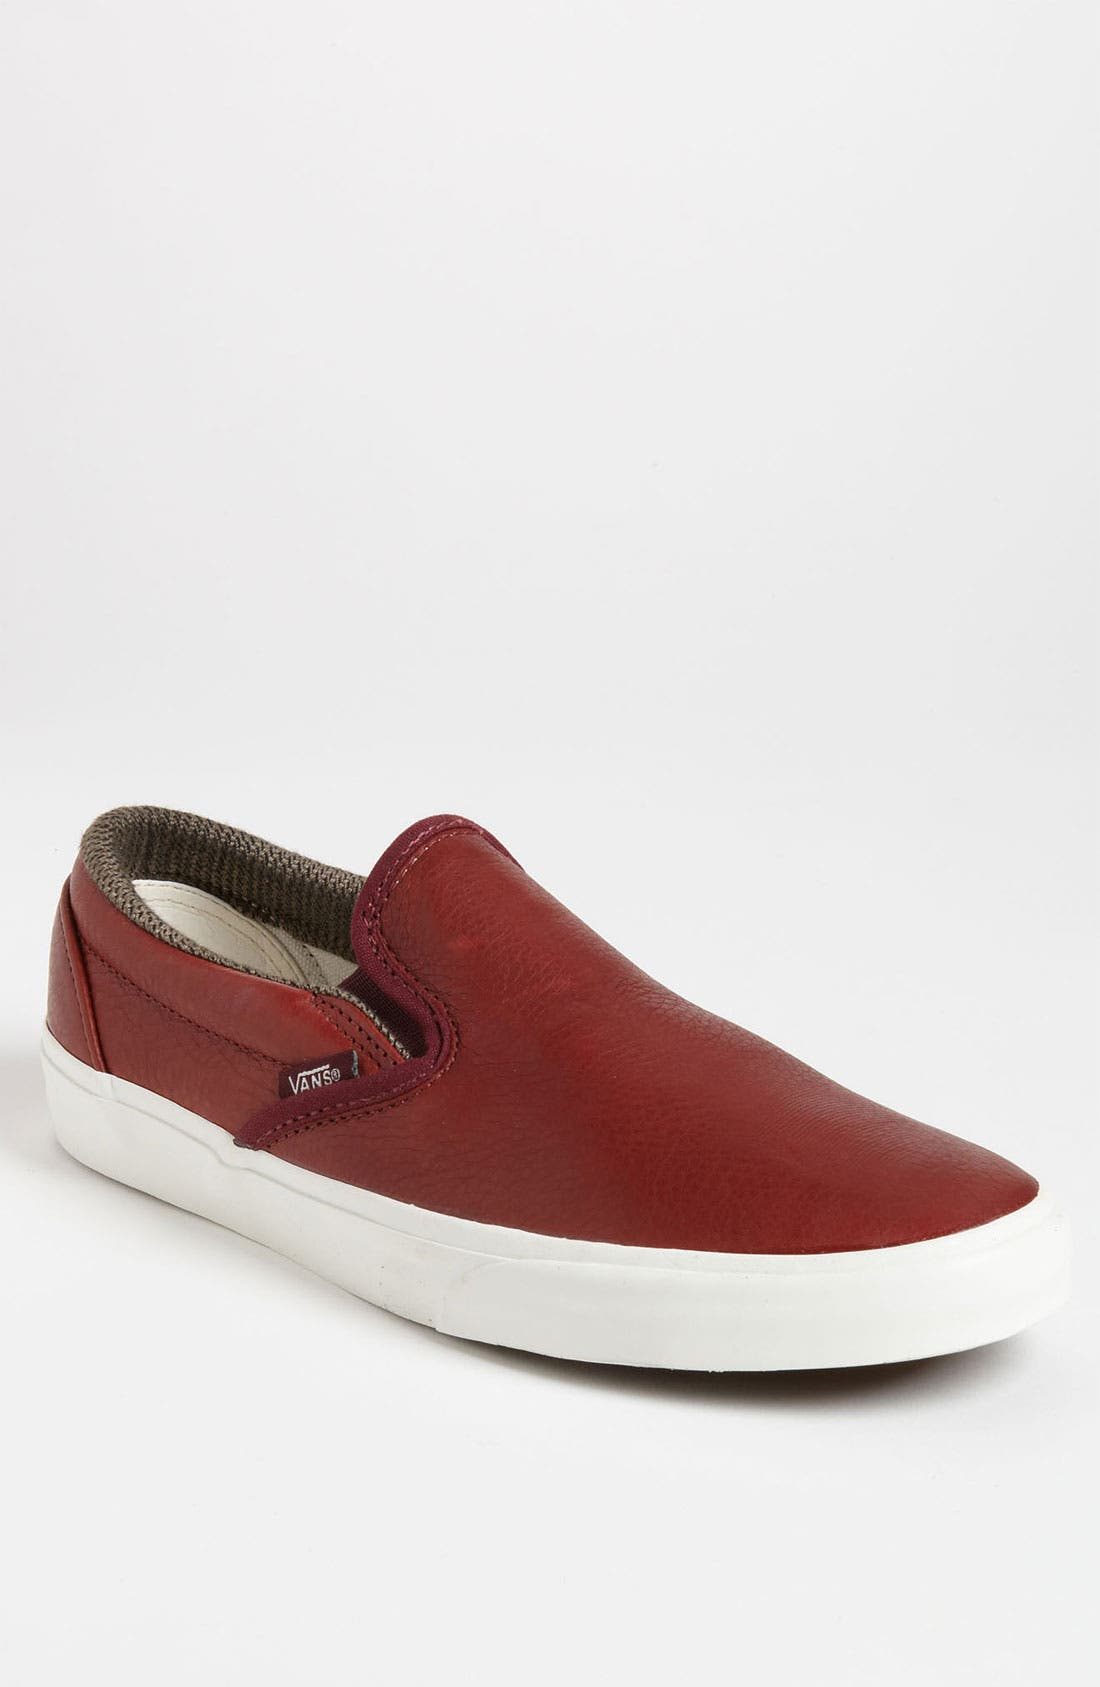 Main Image - Vans 'Tudor' Slip-On (Men)